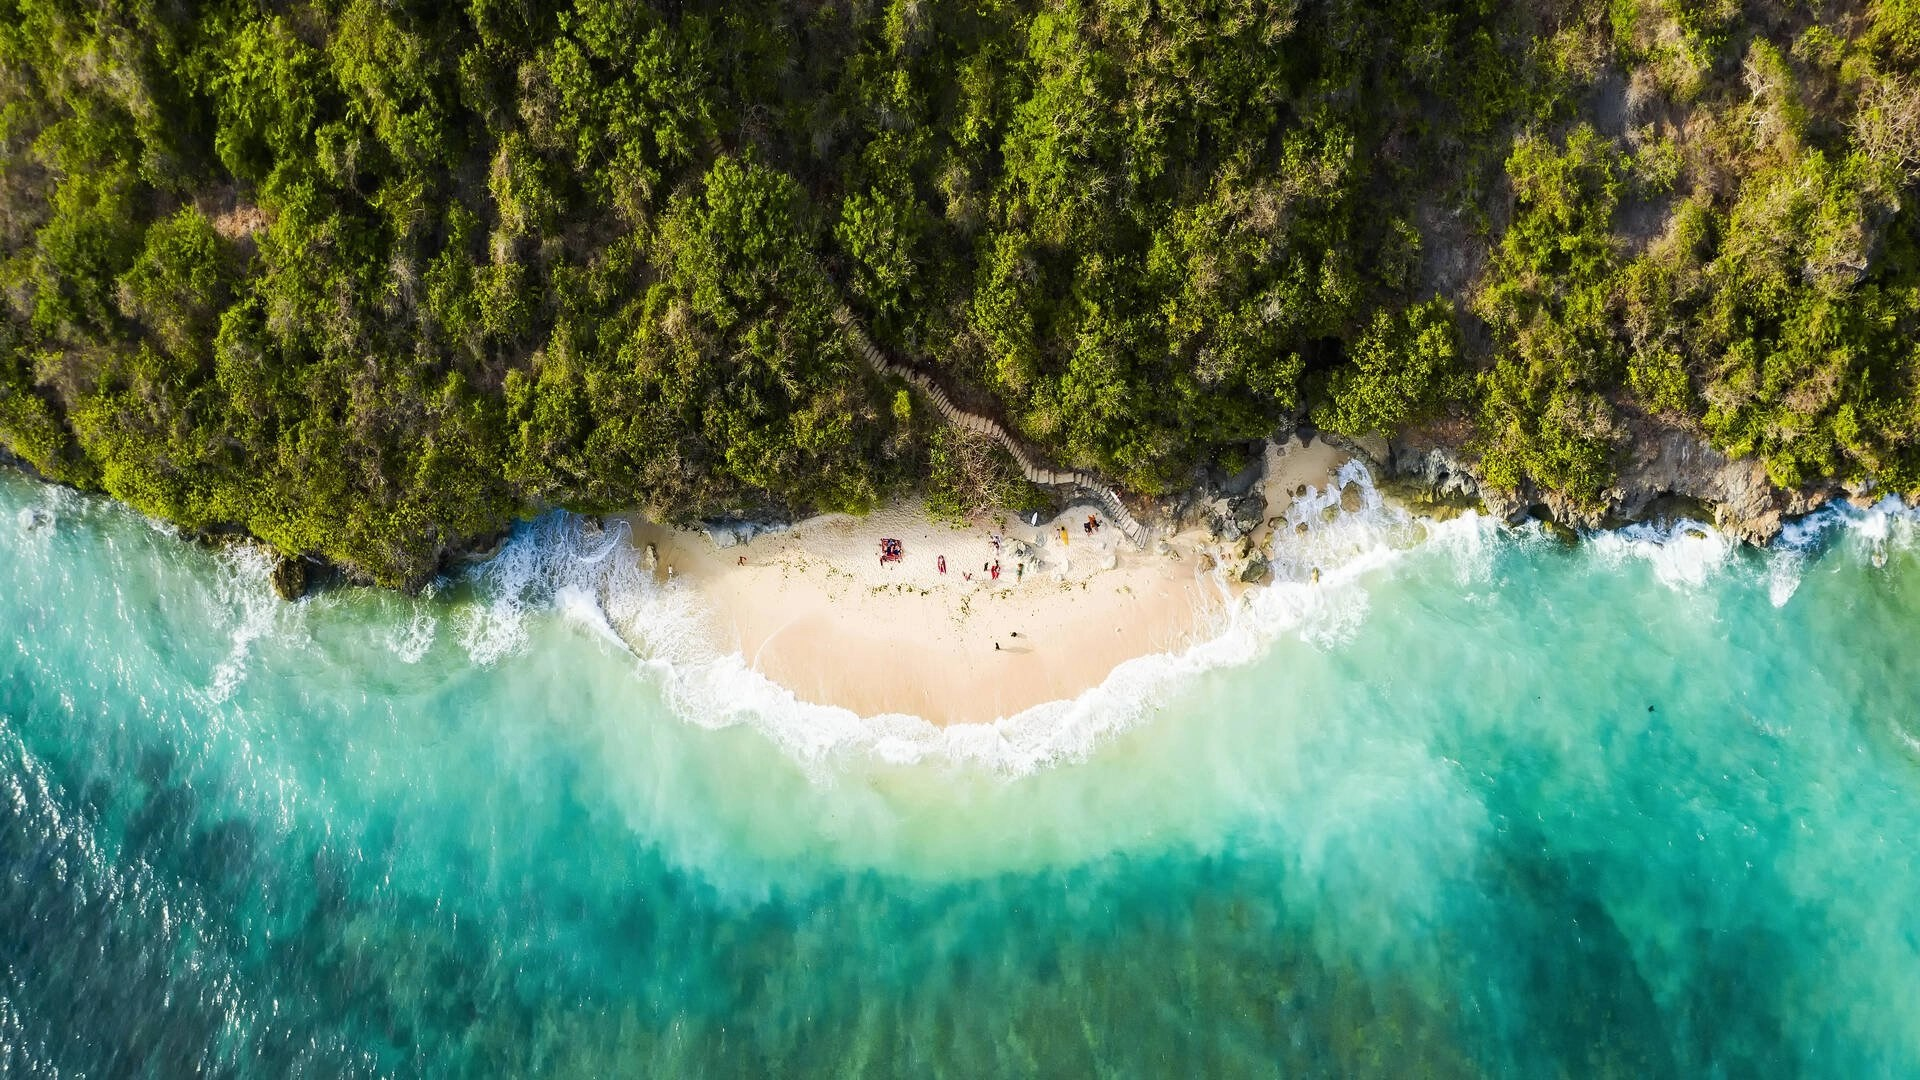 8 non-touristy attractions in Bali that should be on your bucket list